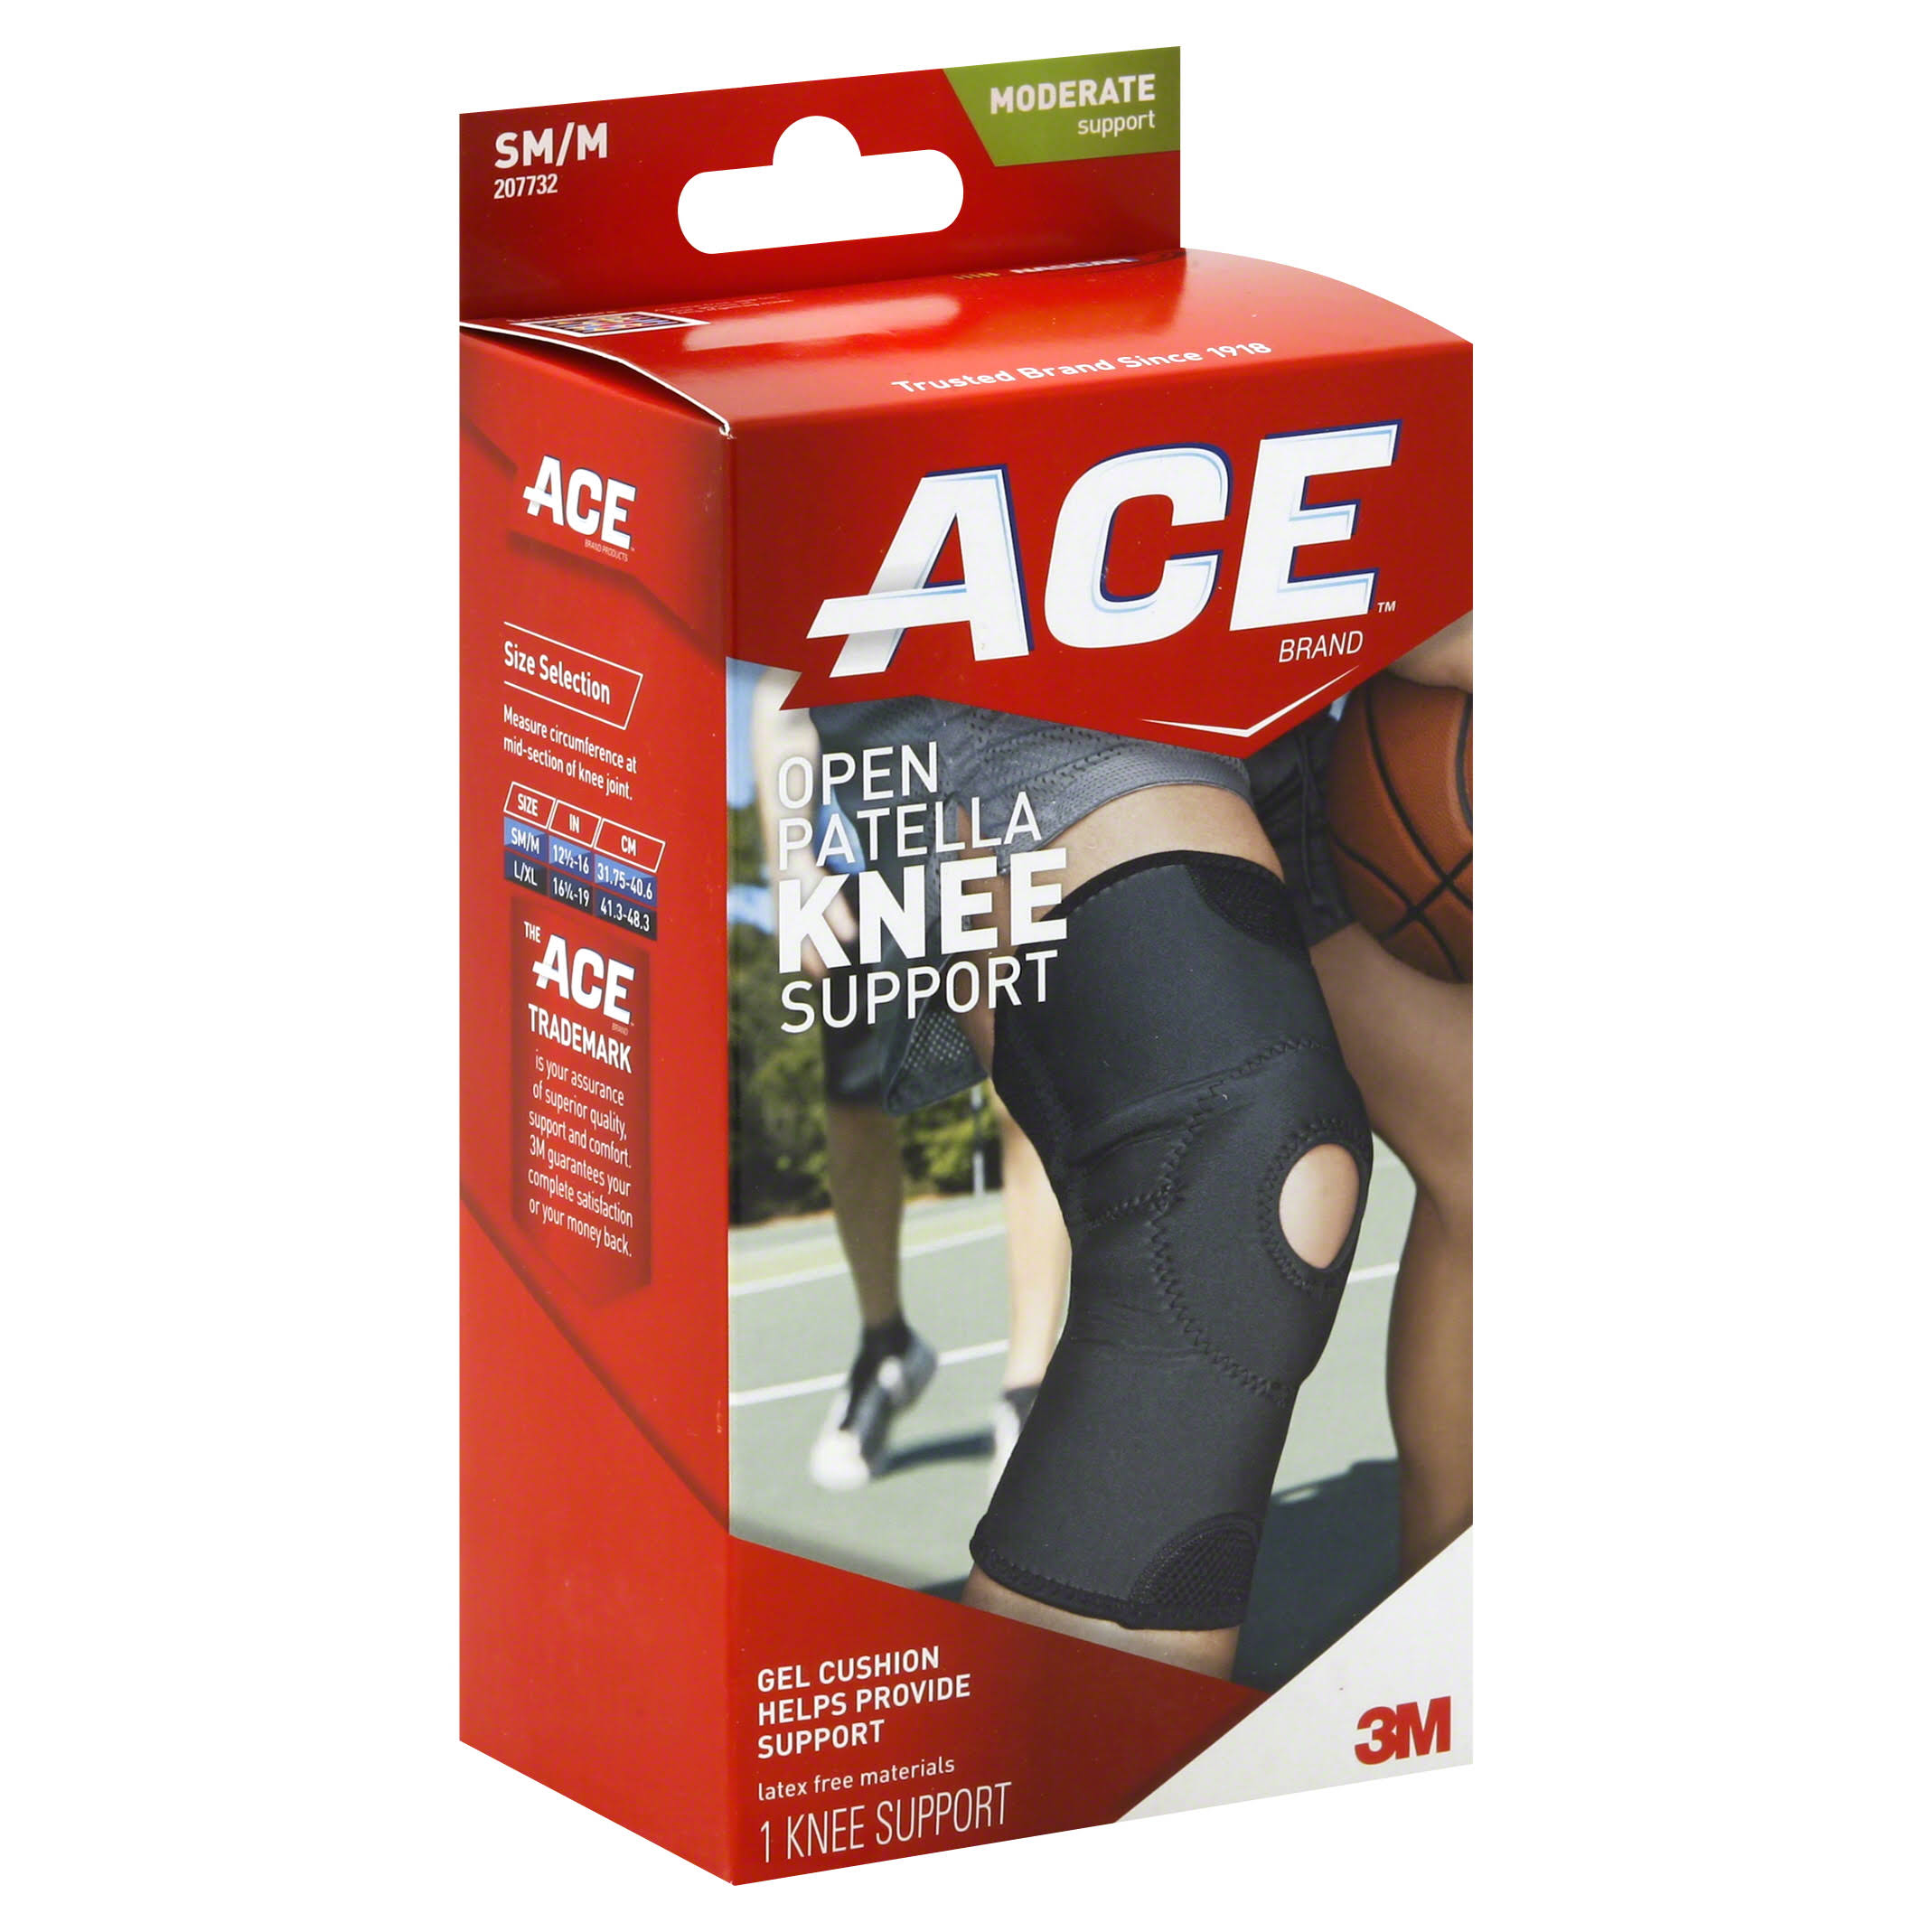 Ace Open Patella Knee Support